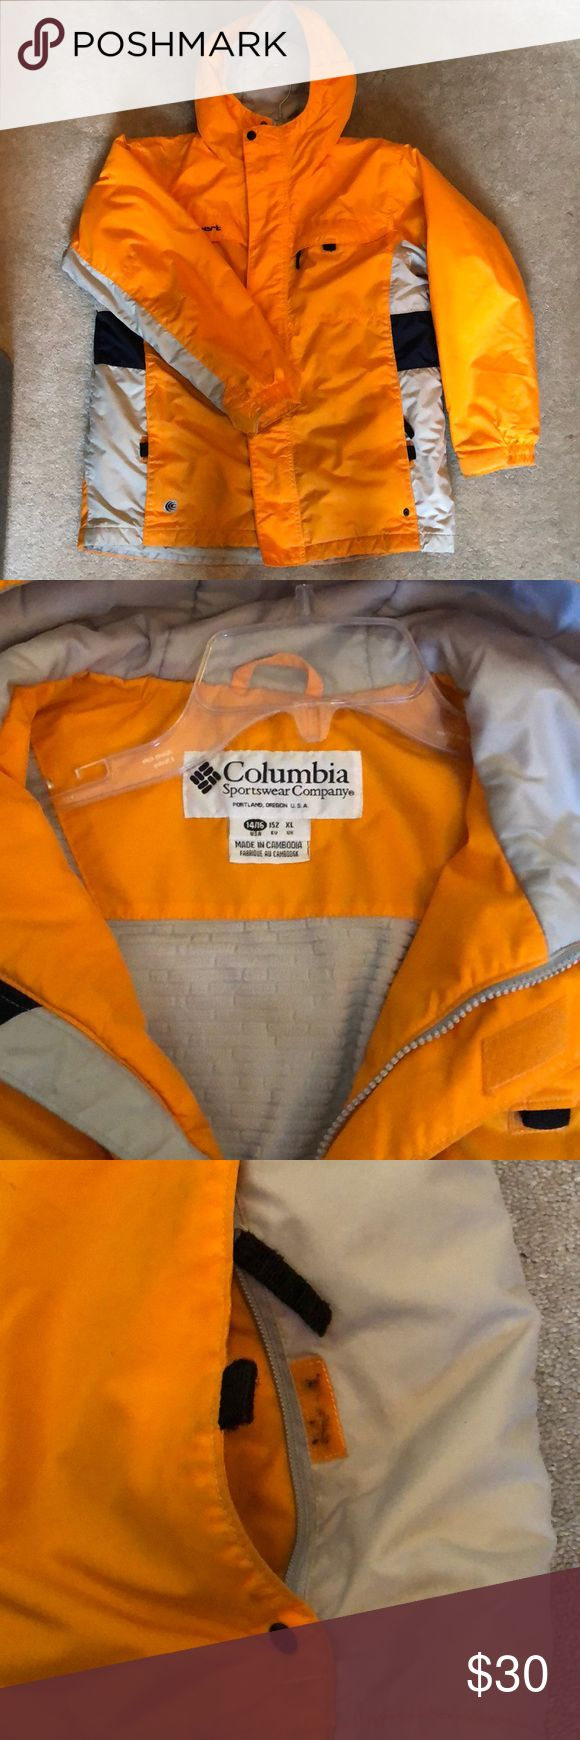 Columbia Sportswear Orange Ski Coat Columbia Sportswear Ski/Winter Coat. Juniors size XL. I am a women's medium and I mostly wore this skiing. Small hole in top right shoulder as pictured. Good condition only worn couple times. Smoke Free, Pet free home.   Make an Offer 💁🏼🎉 Columbia Jackets & Coats